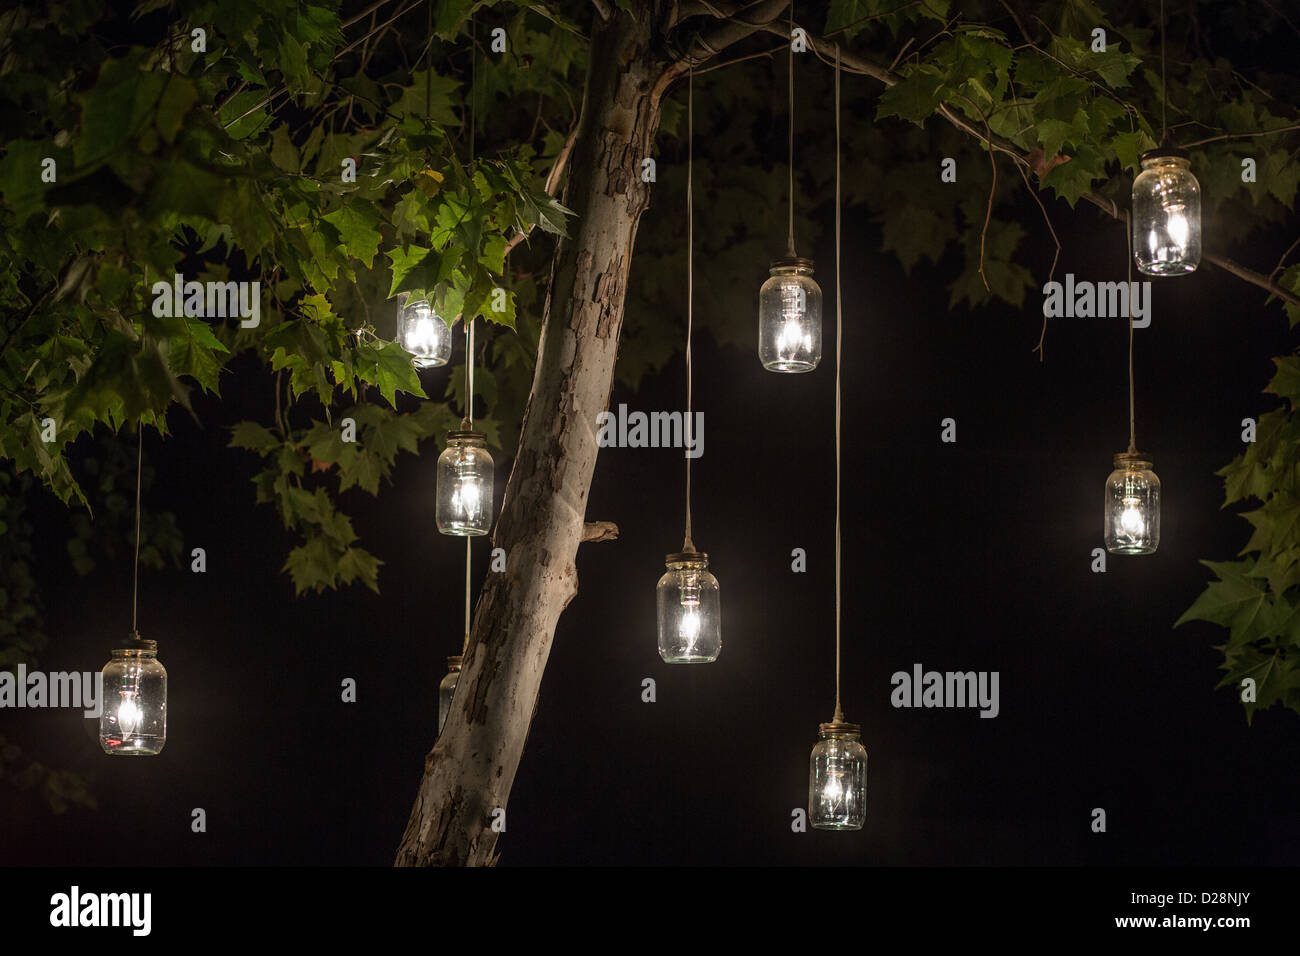 Glowing mason jar lights hanging from a tree stock photo for How to hang string lights on trees